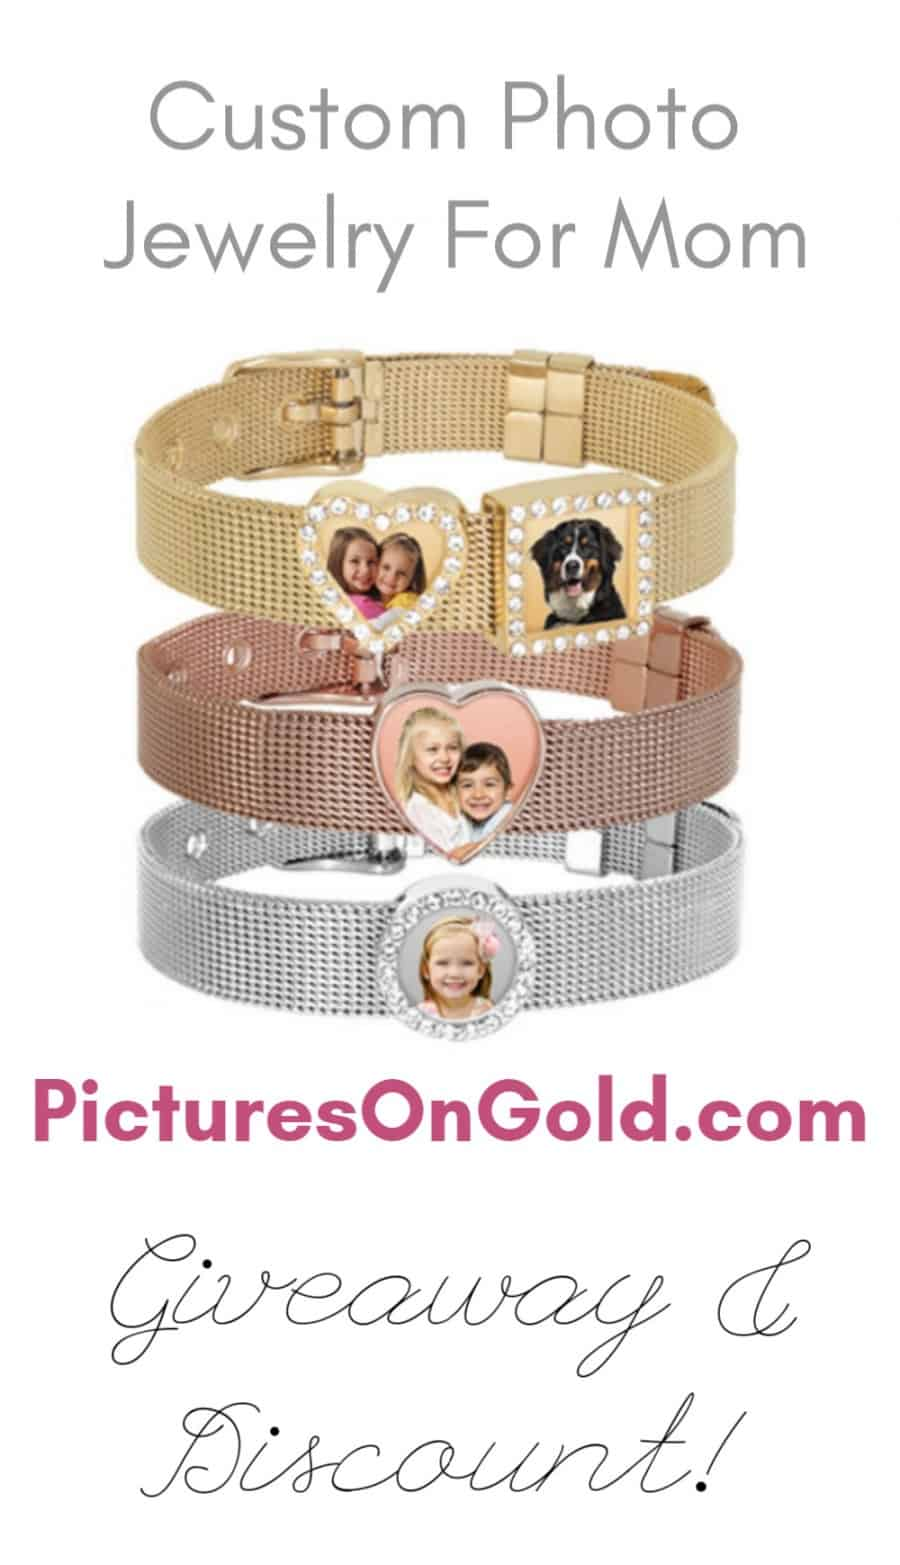 Custom Photo Jewelry For Mom From PicturesOnGold.com Review + Discount